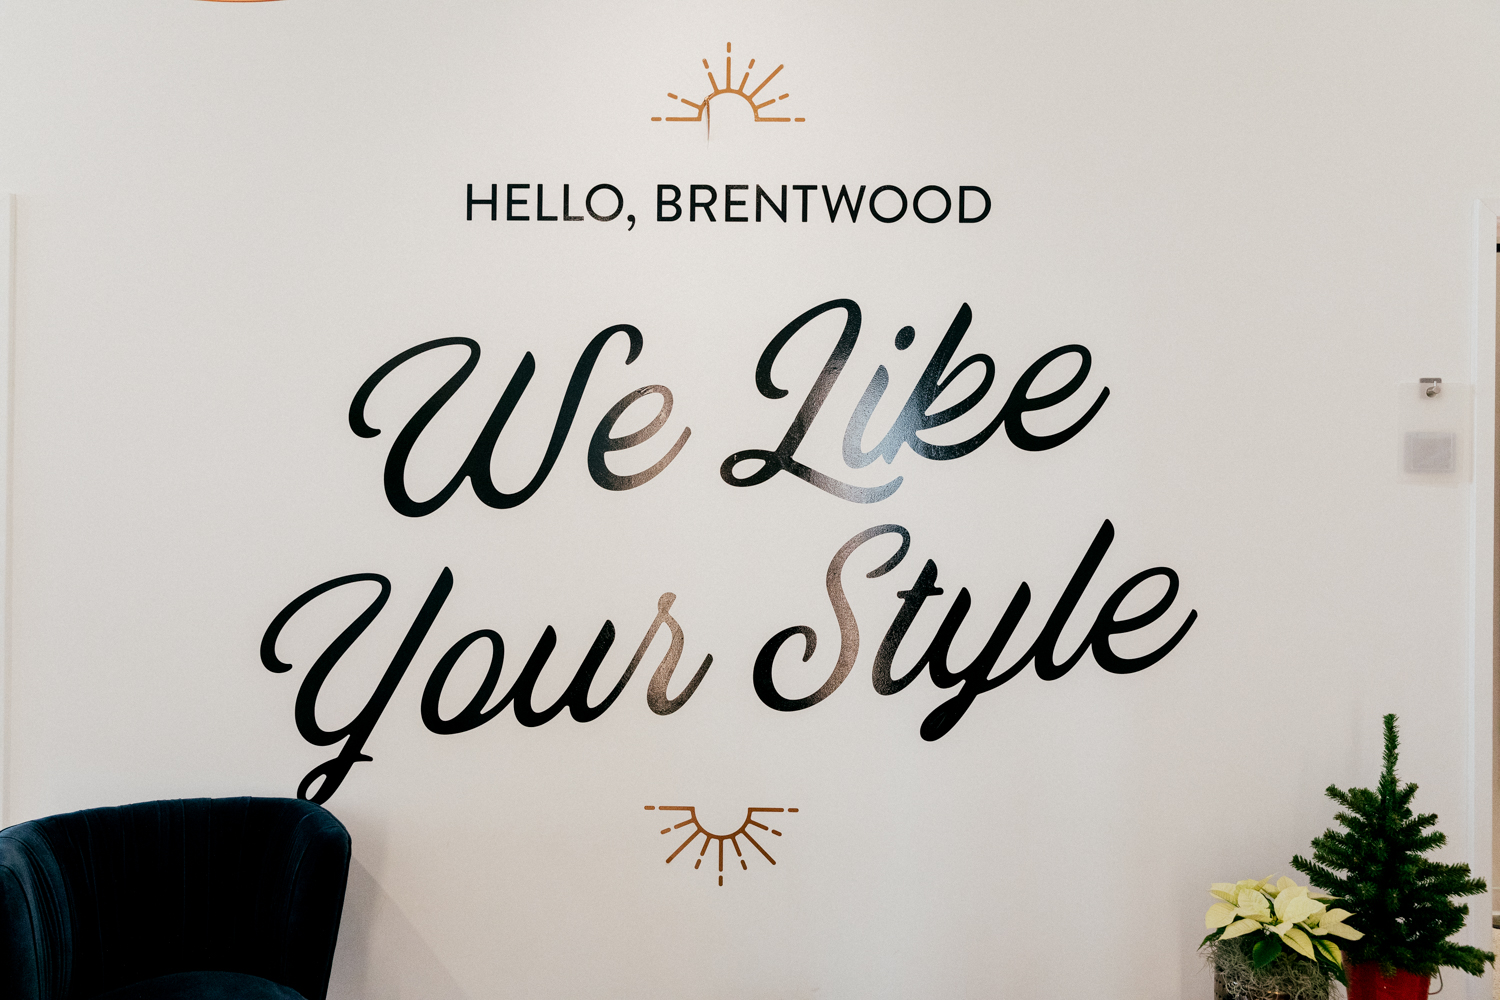 Nordstrom Local in Brentwood - tailoring, pick-up, and gifts